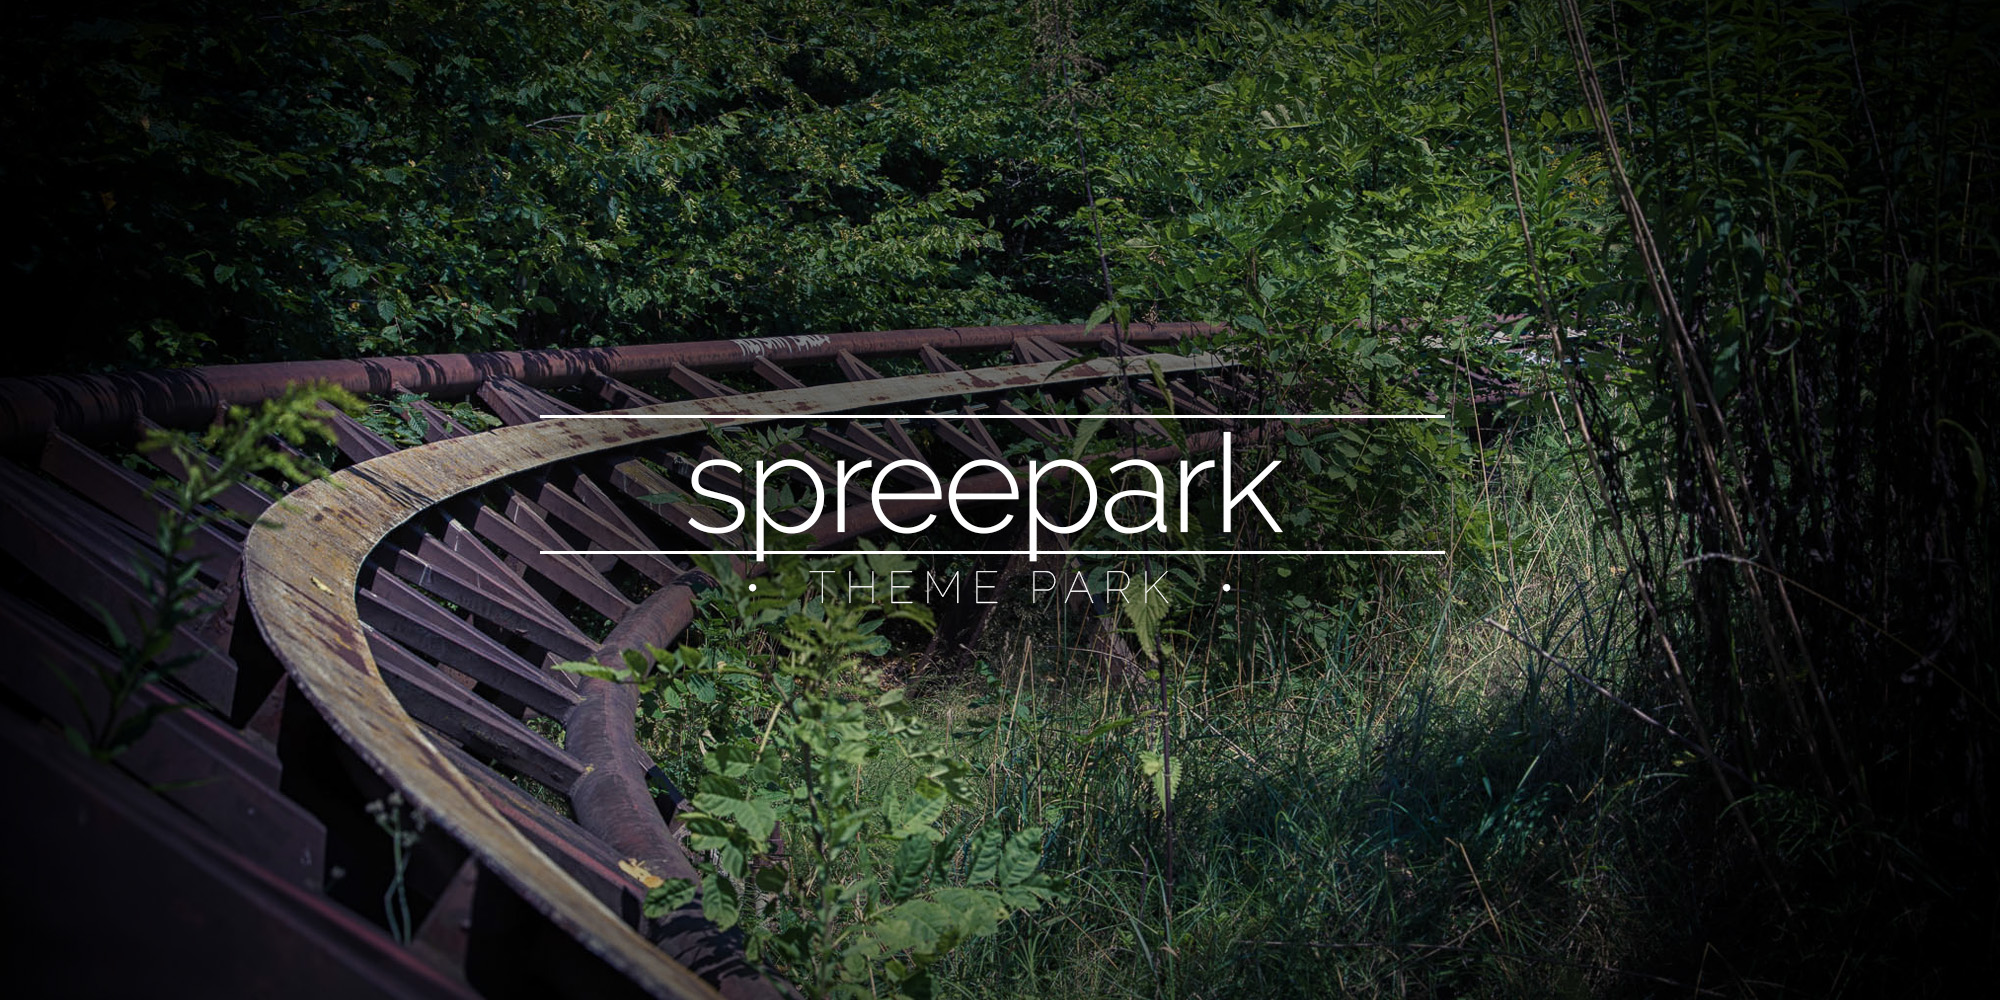 Spreepark abandoned theme park, Germany